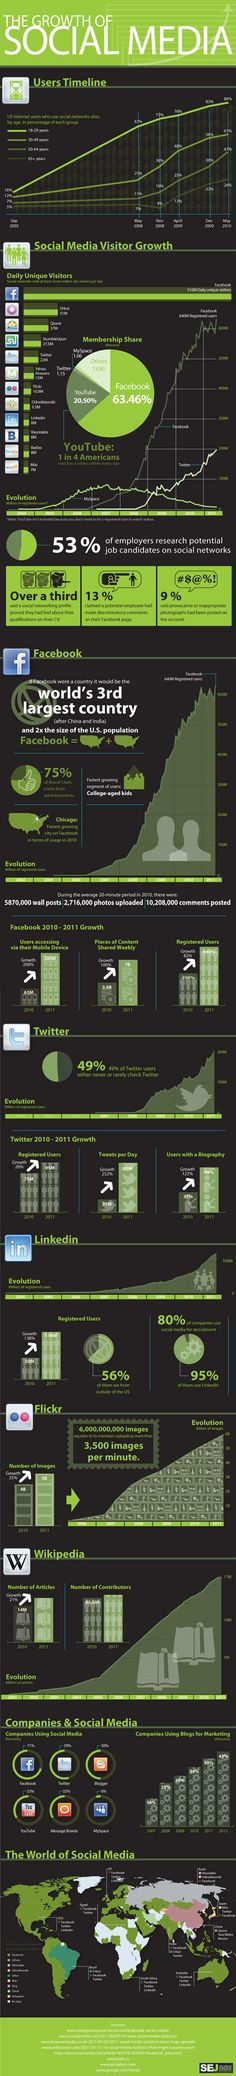 The Growth and Obsession of Social Media Management an infographic #Socialmedia